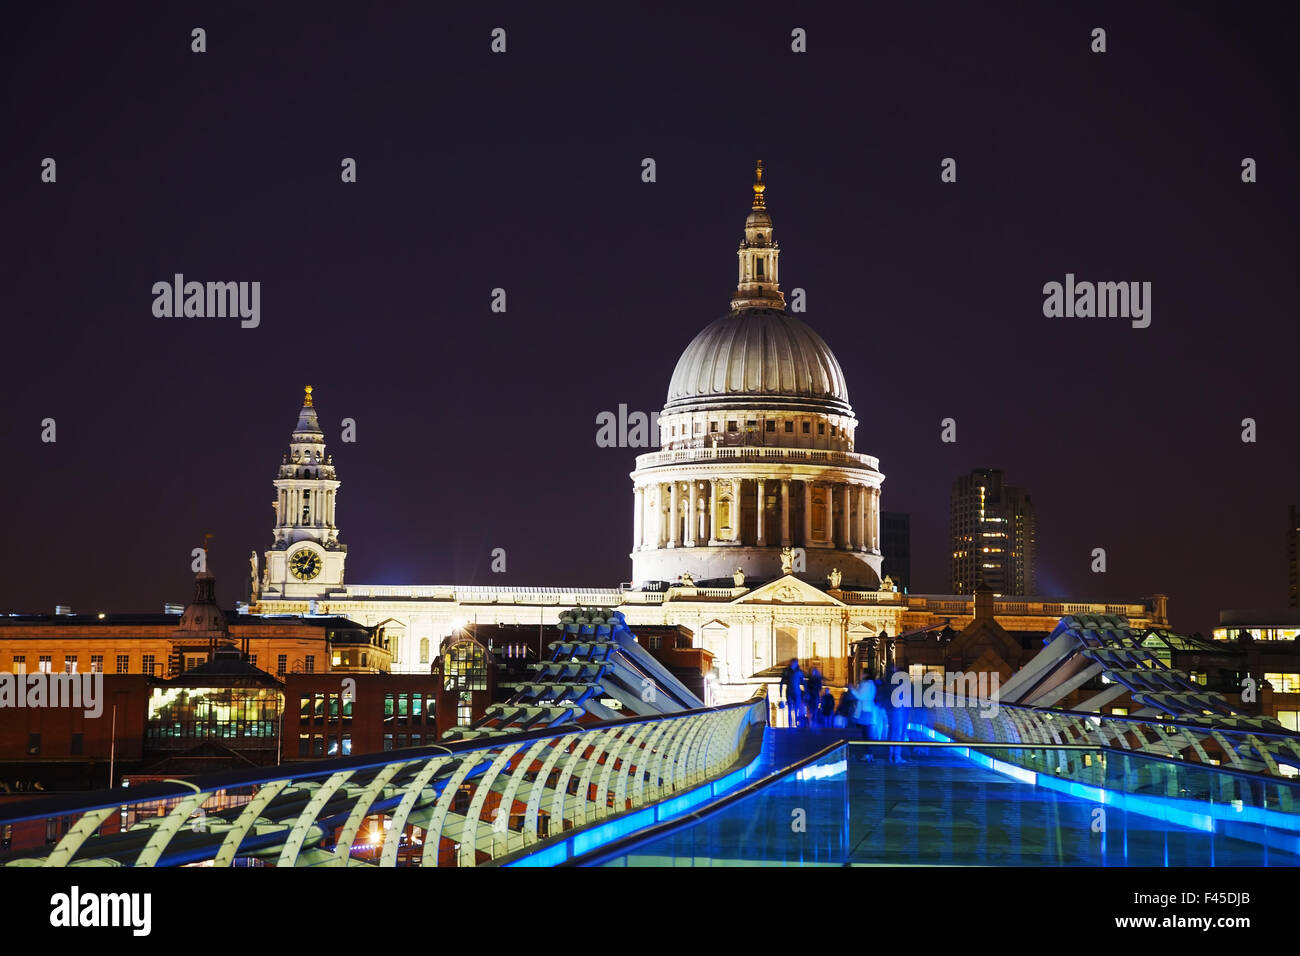 Saint Pauls cathedral in London - Stock Image